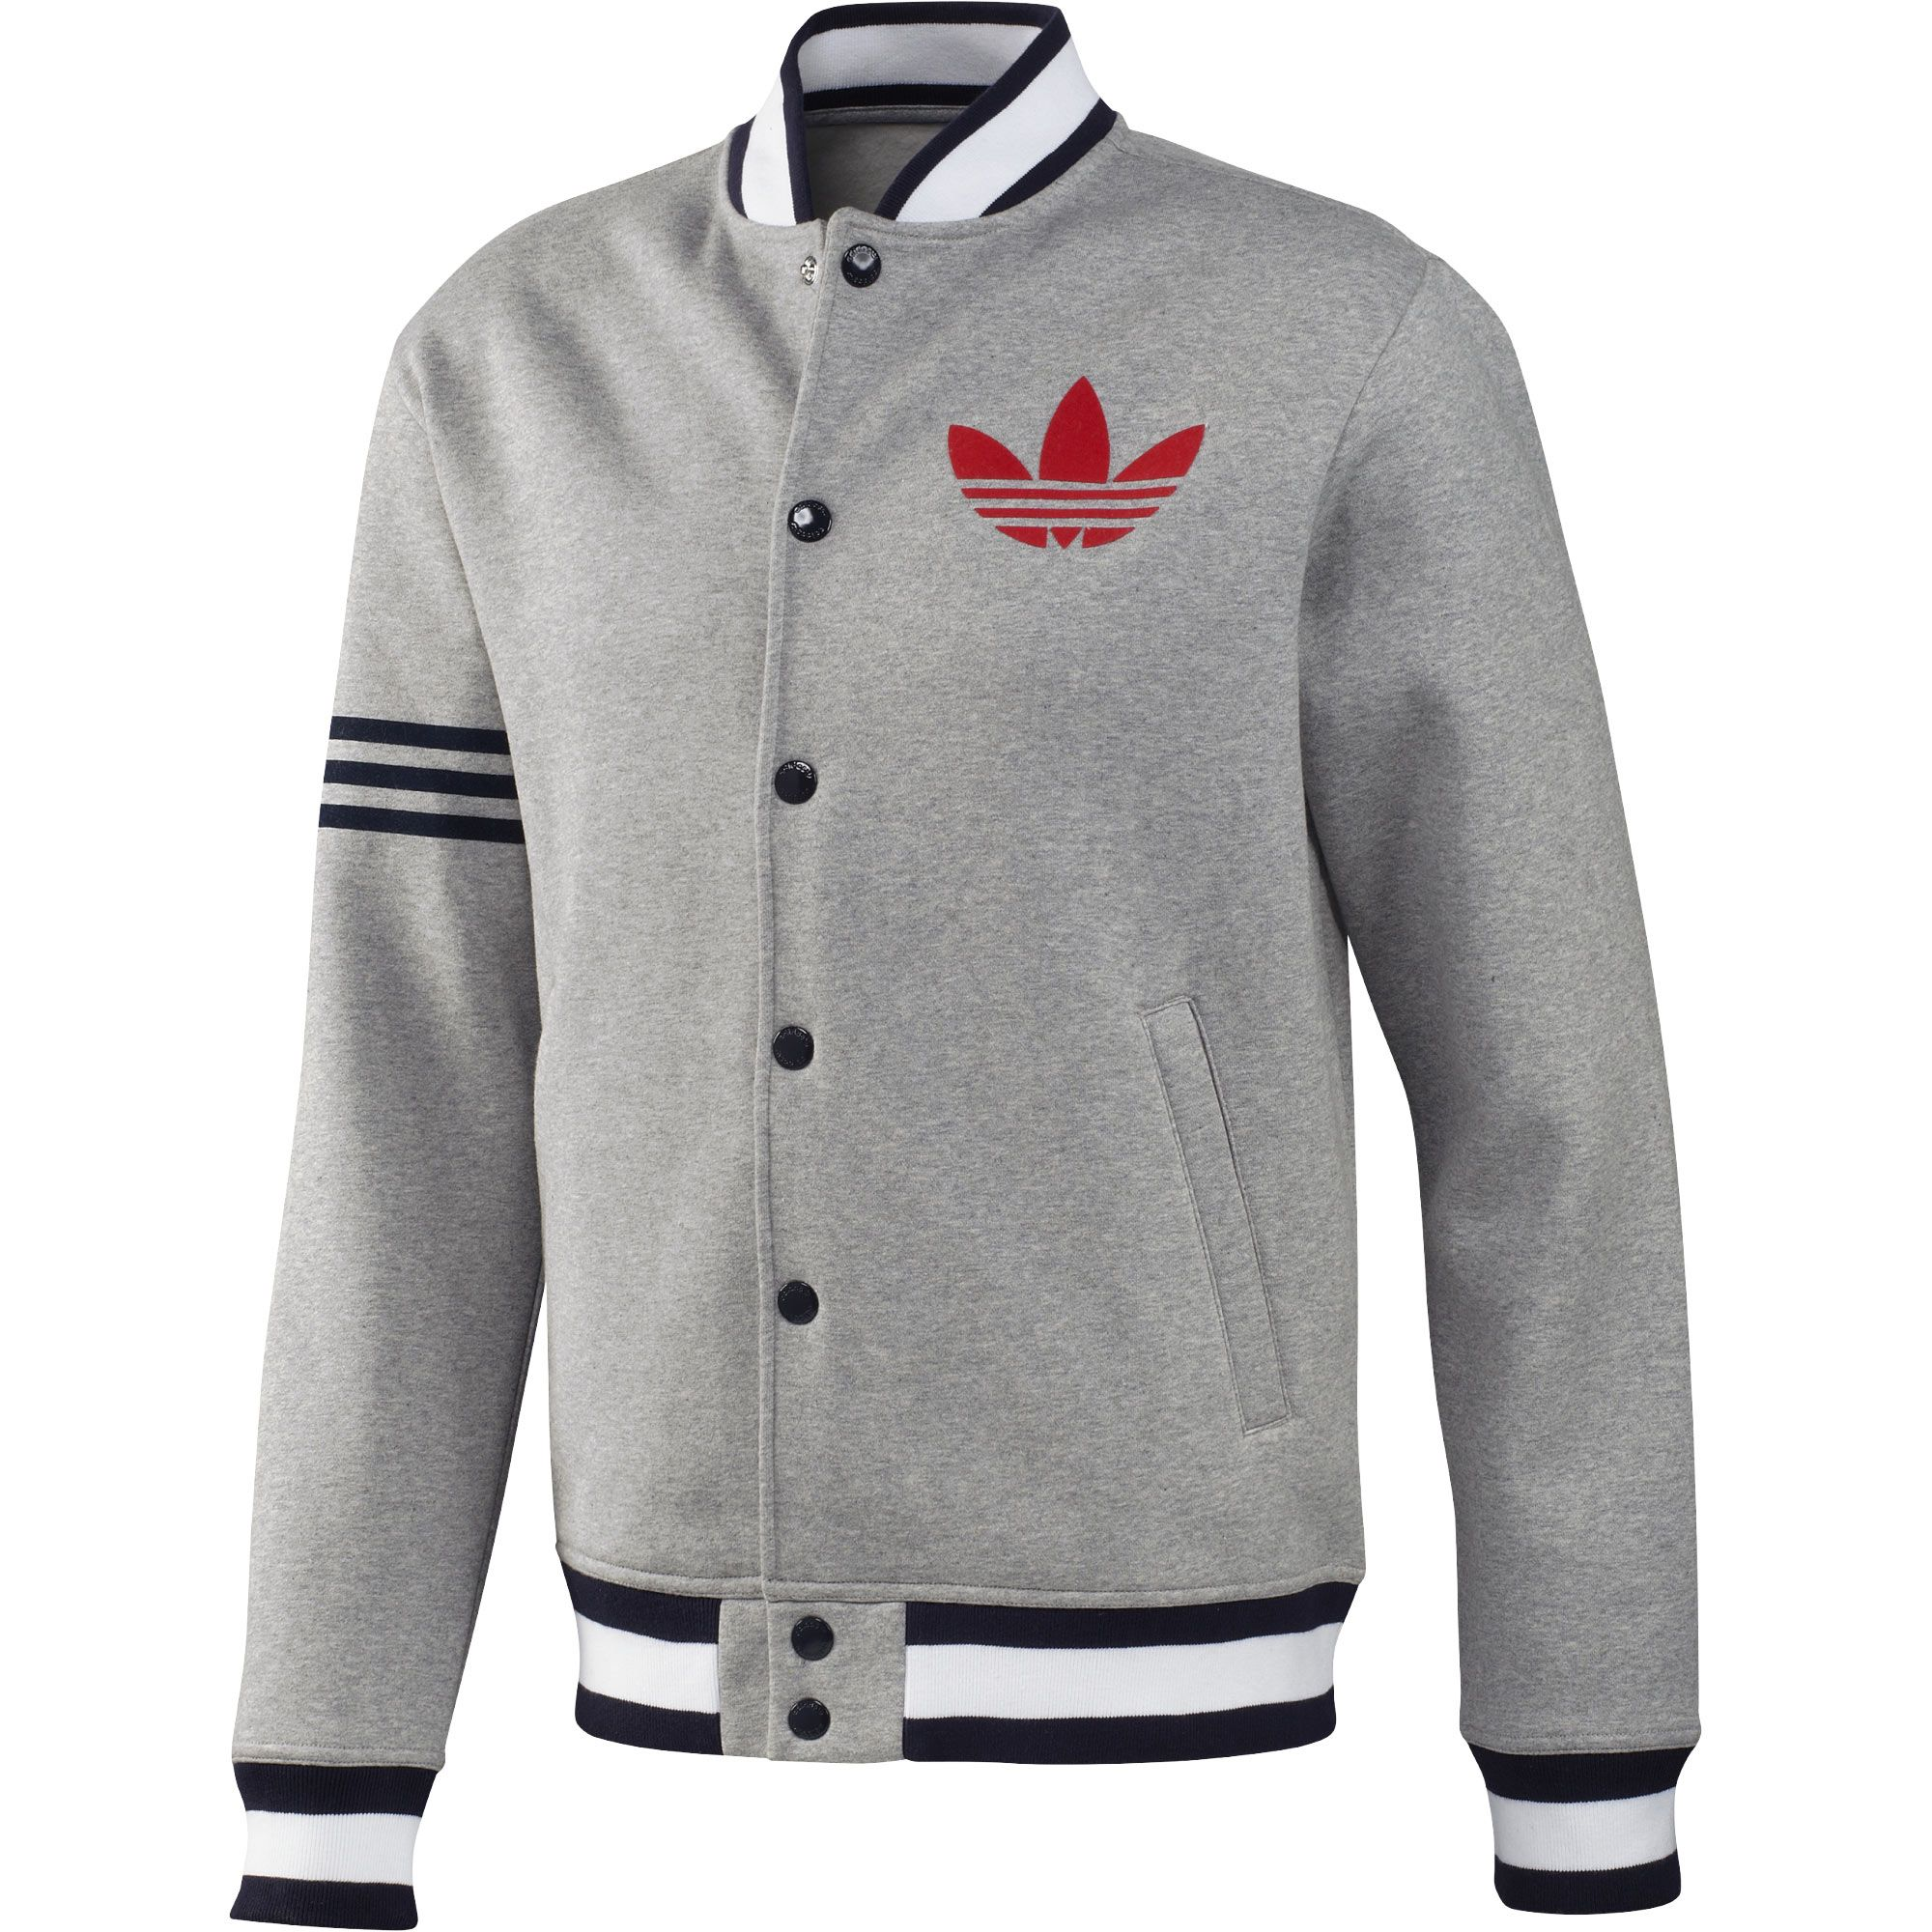 5af84bfdcab0 adidas Men s Superstar Fleece Remix Jacket